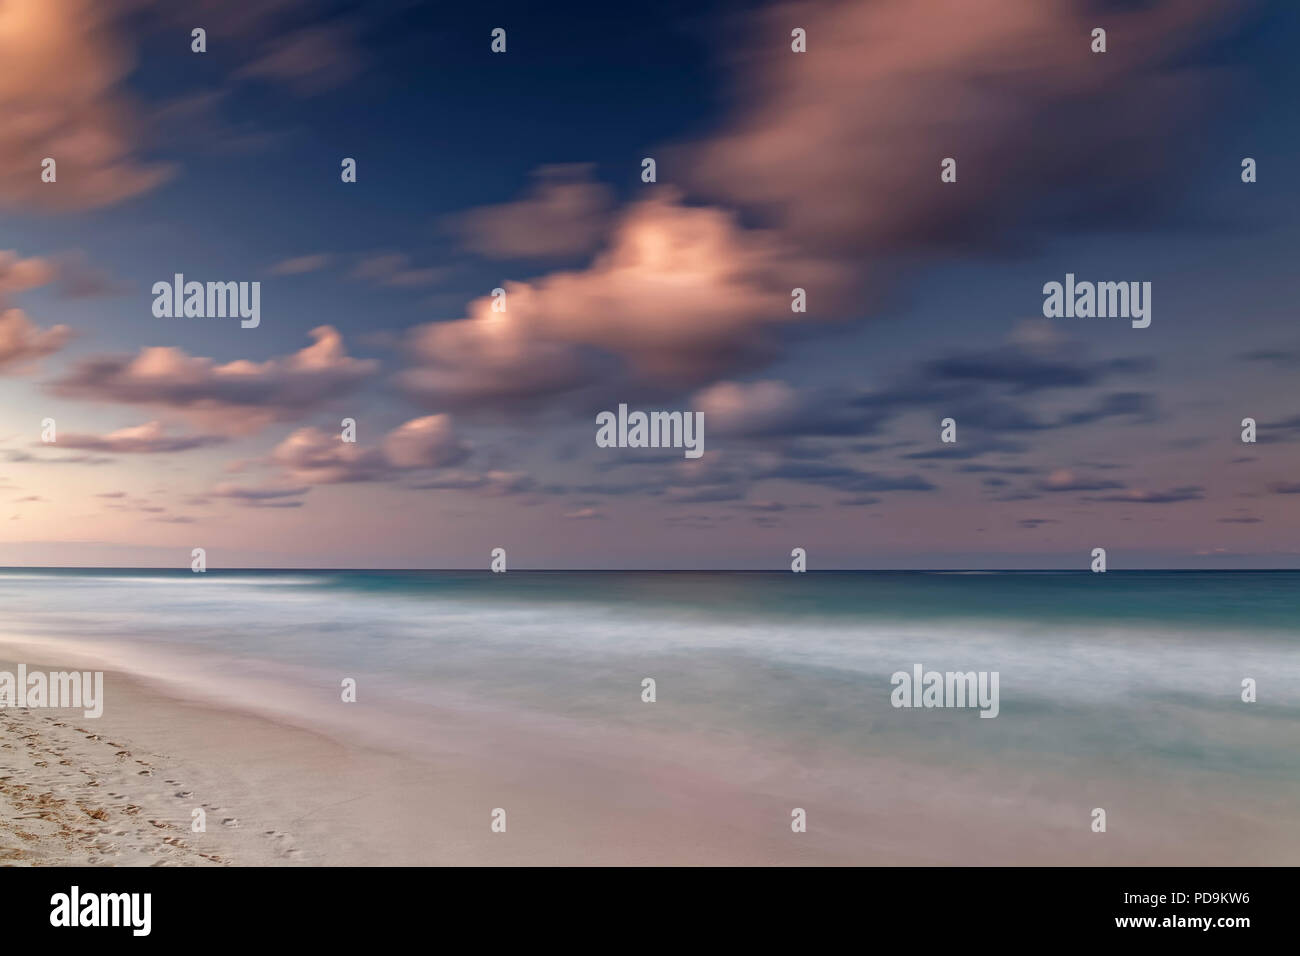 Afterglow with clouds by the sea, Playa Bavaro, Punta Cana, Dominican Republic - Stock Image